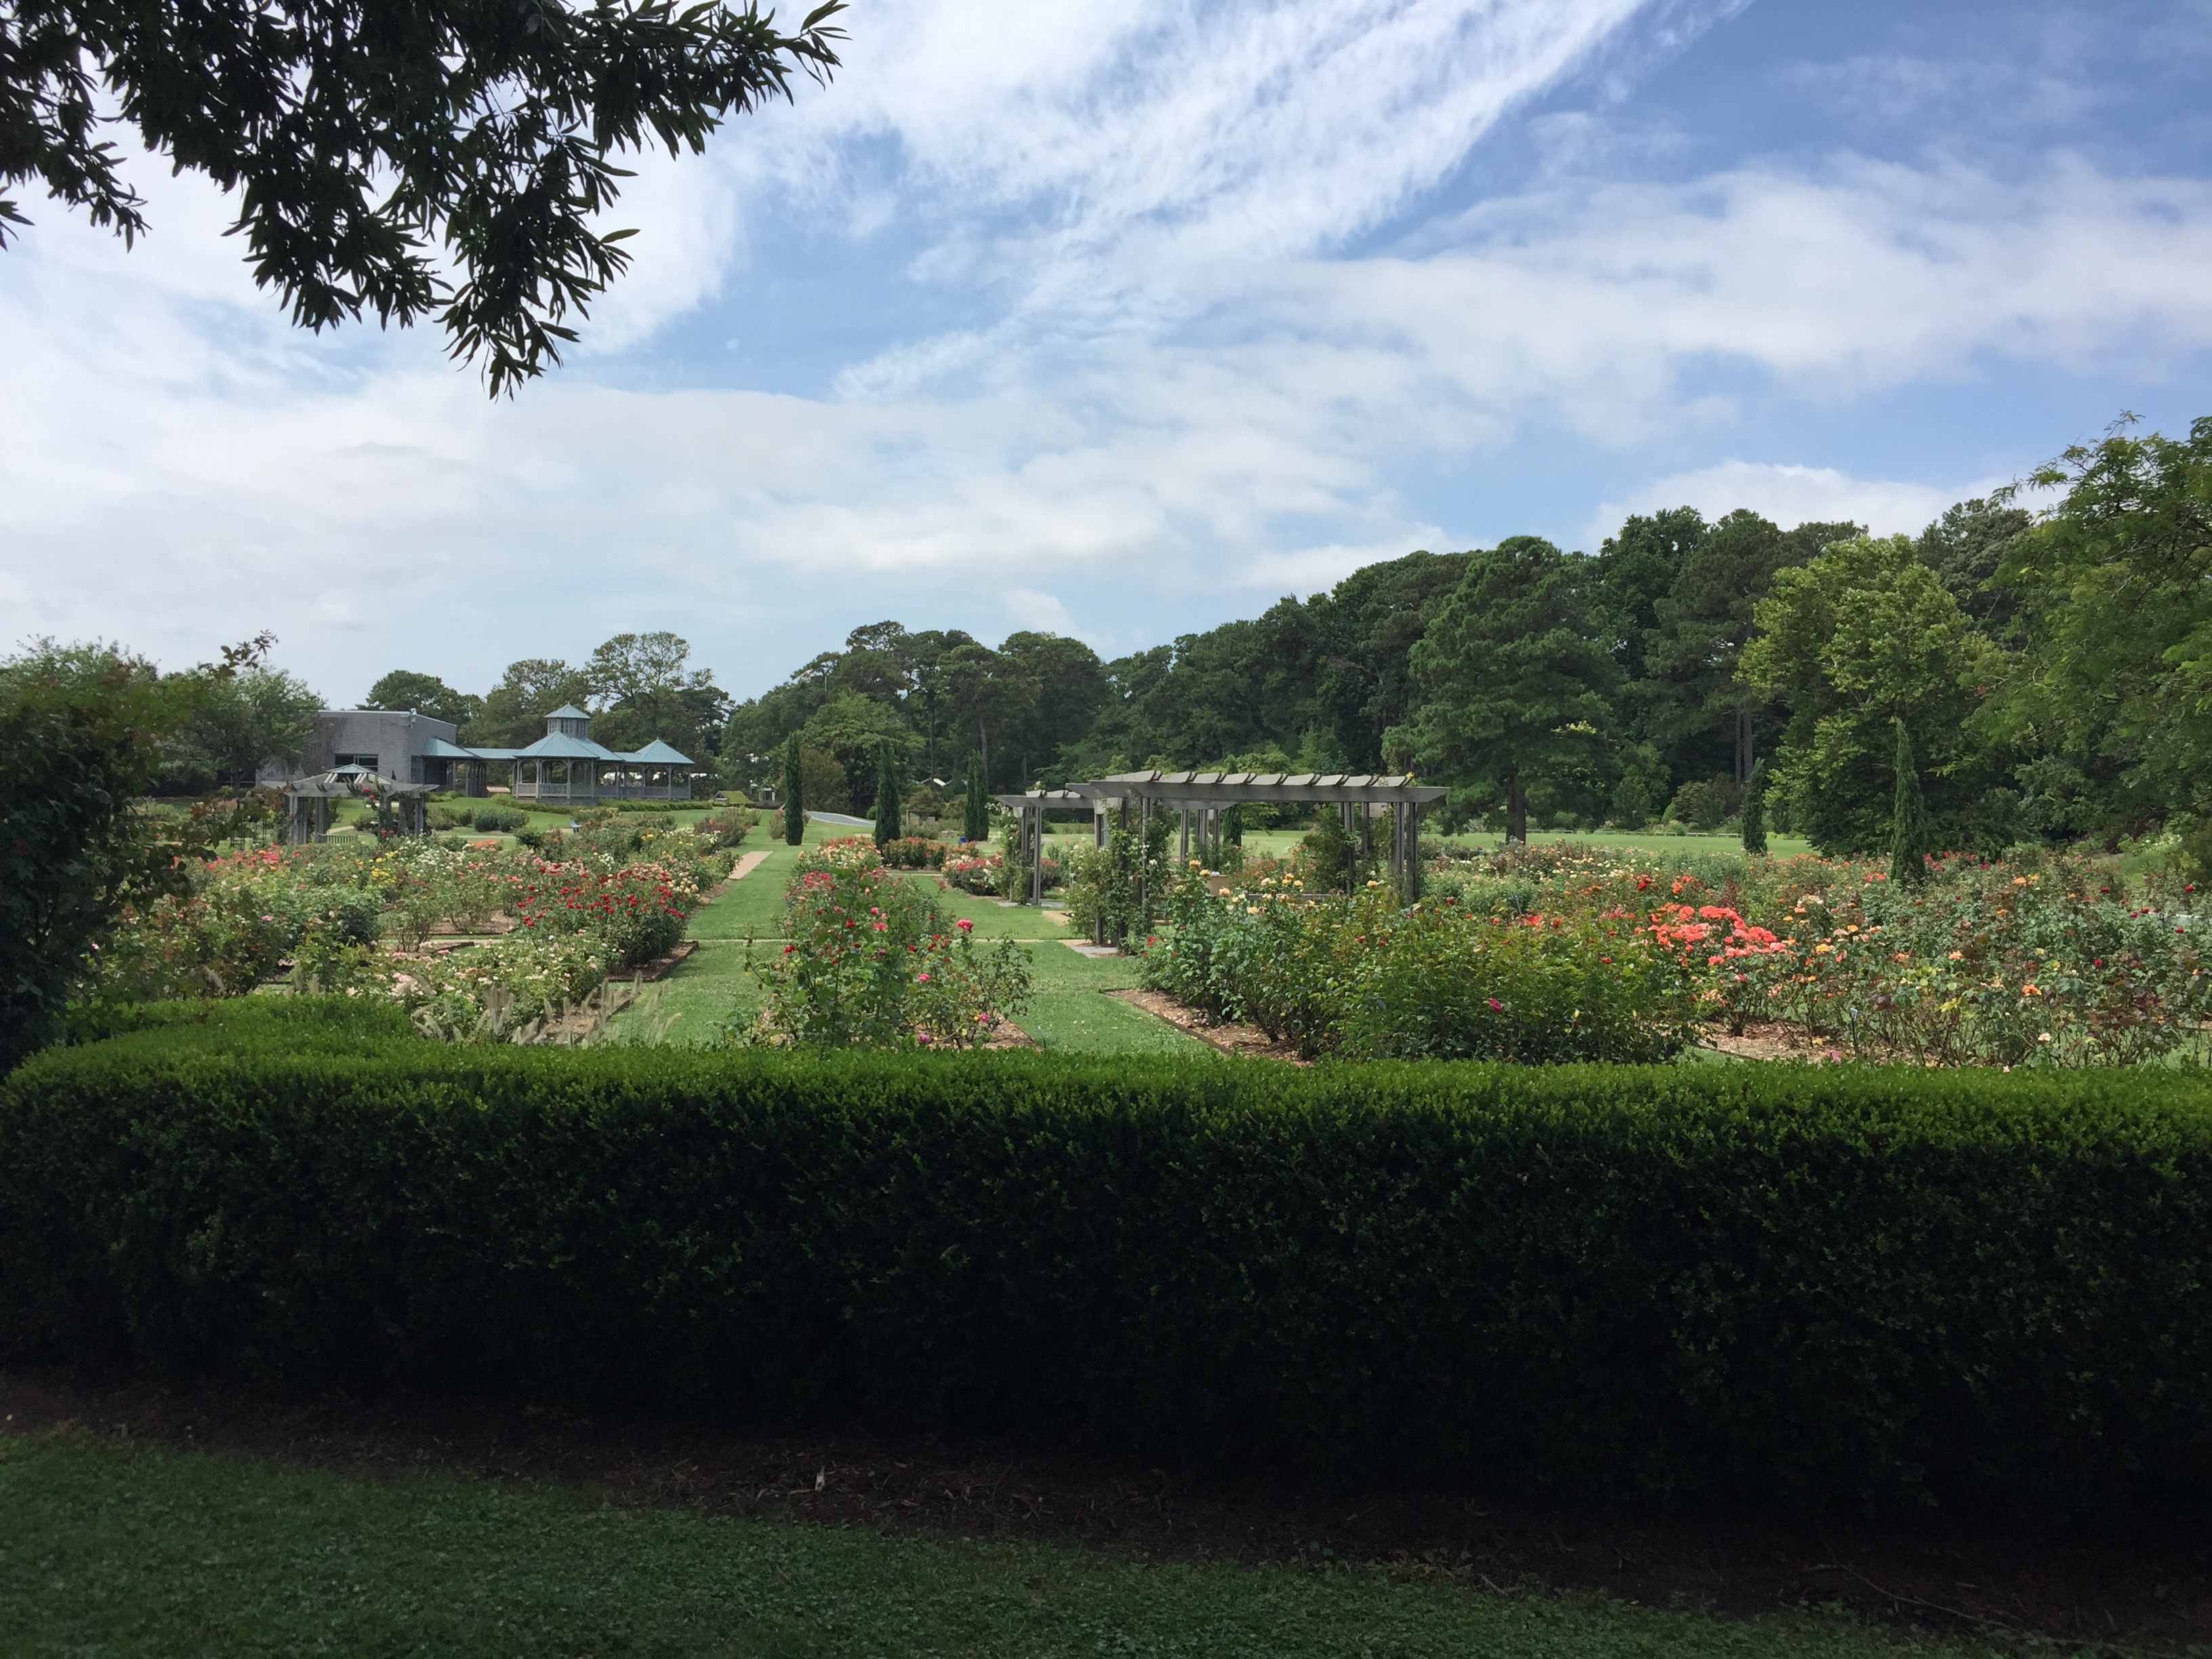 The tram tour gives an overview of garden areas. Photo © 2018 Elaine Mills.